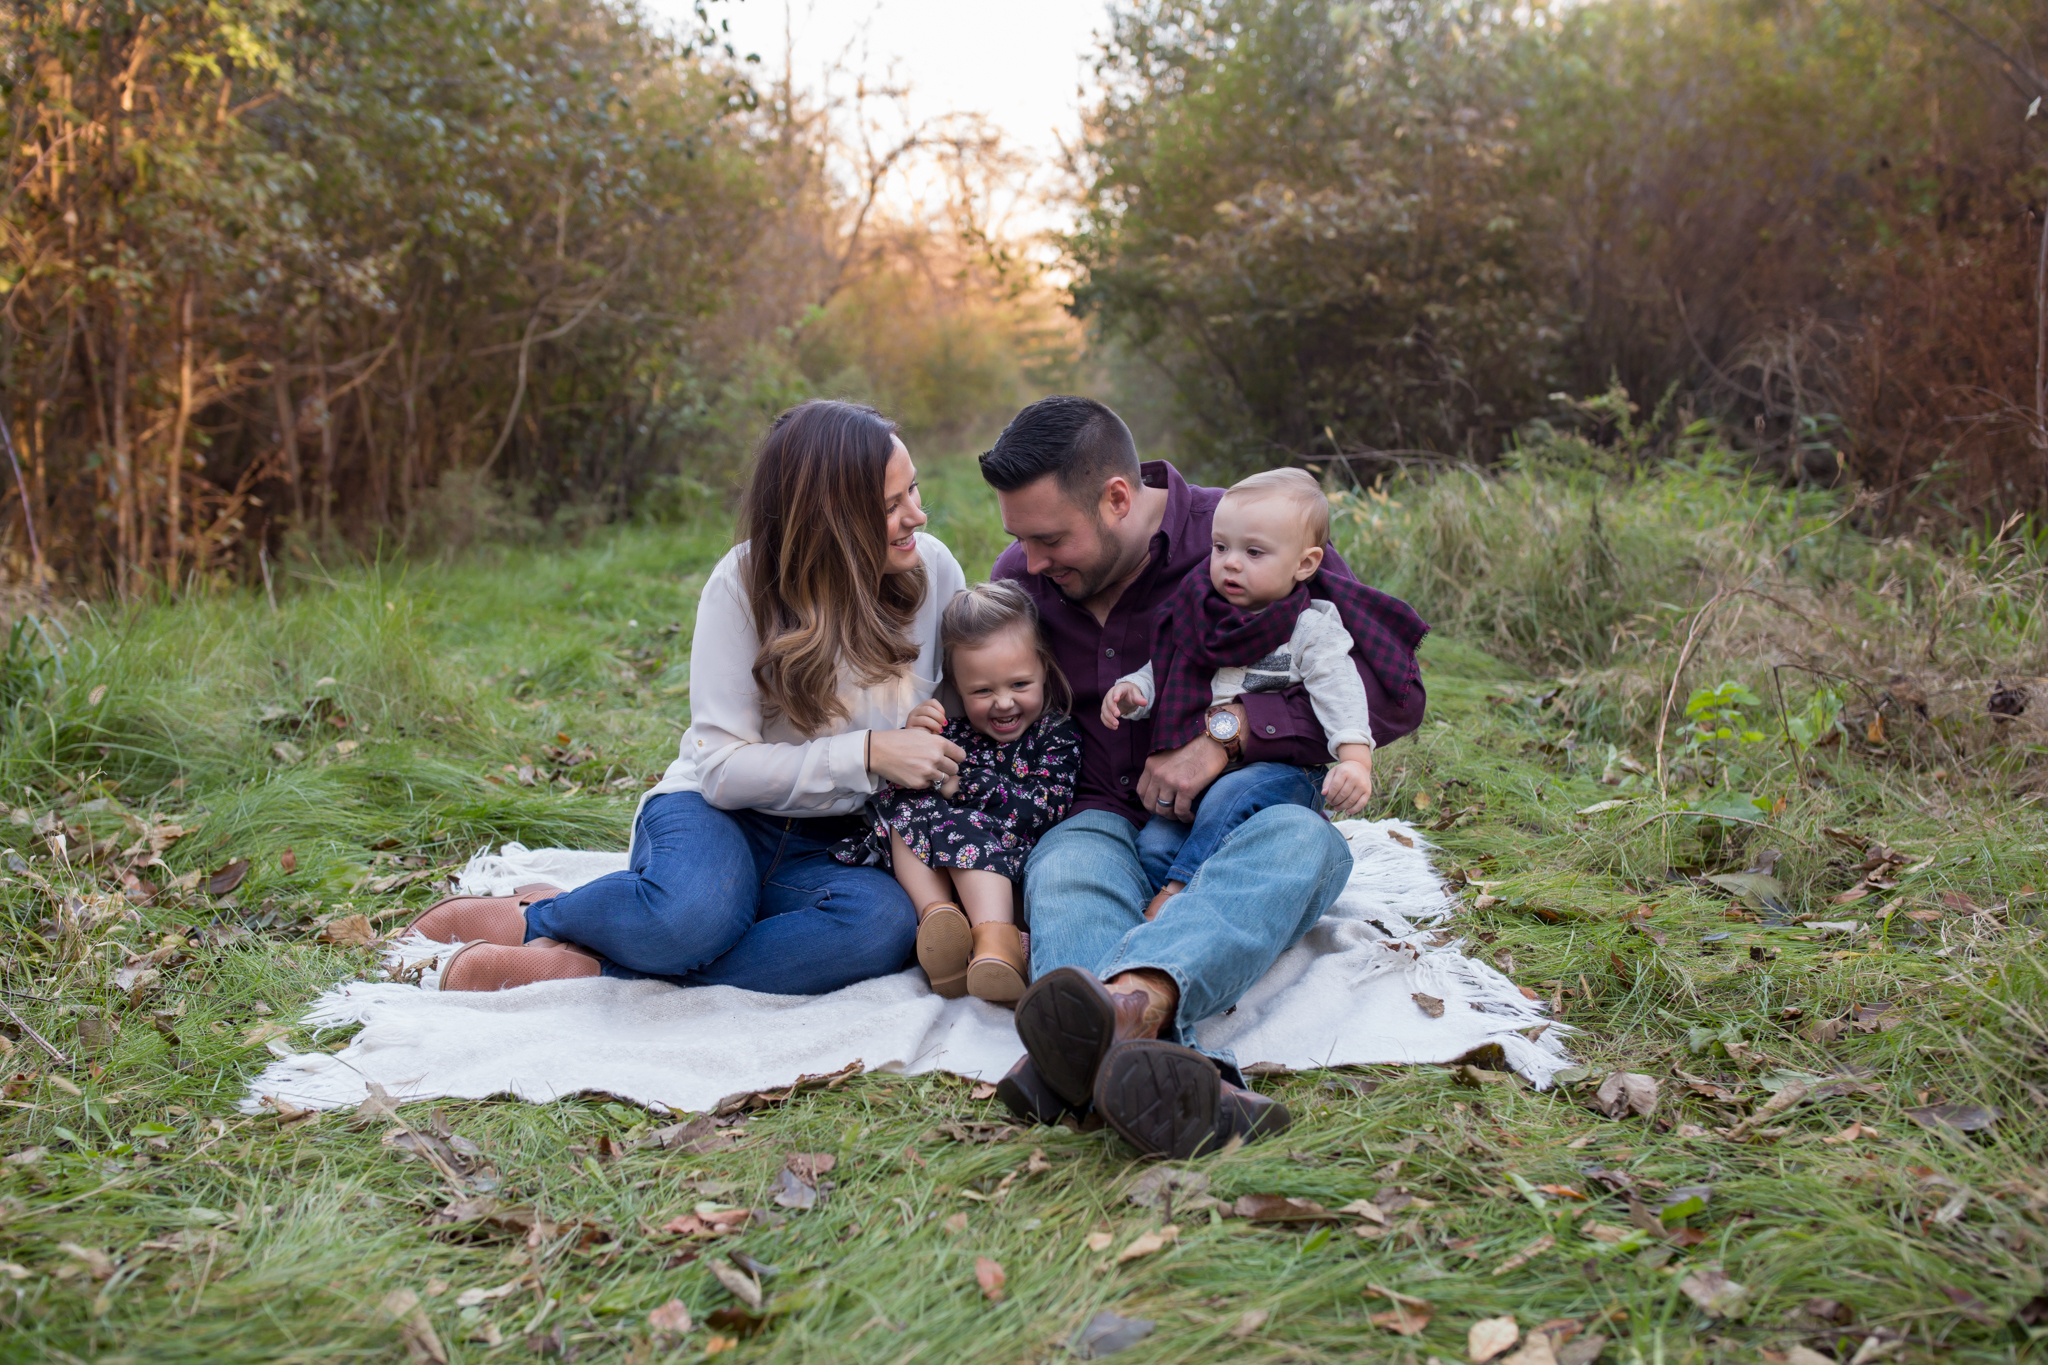 Hailey Family Fall Session, 2 kinds, family poses with young kids, Cara Peterson Photography Rockford IL-2.jpg